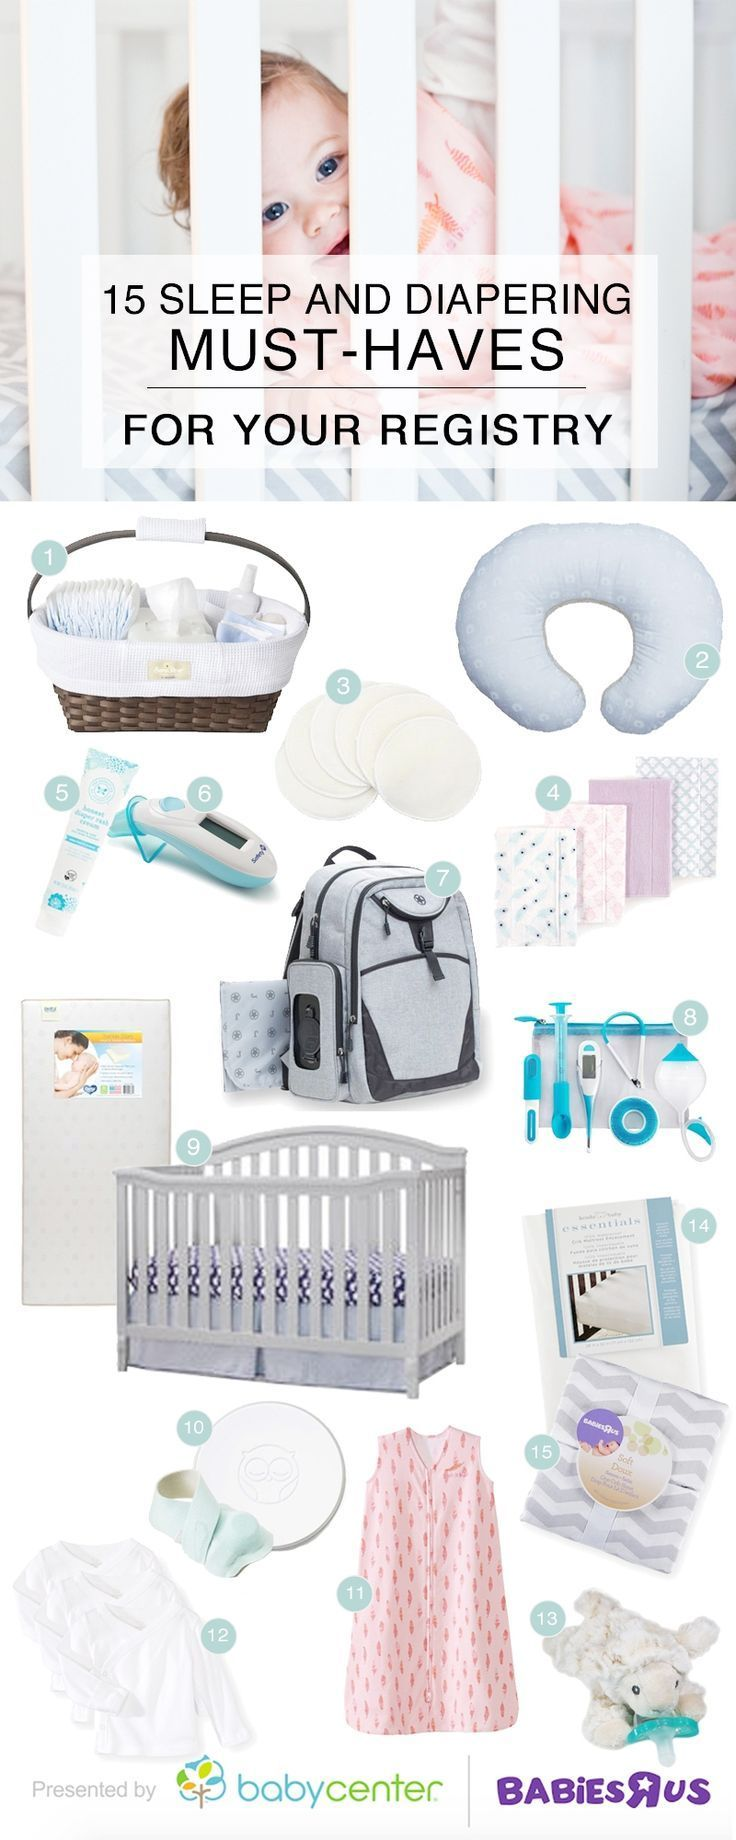 15 sleep and diapering recommendations for your nursery ...